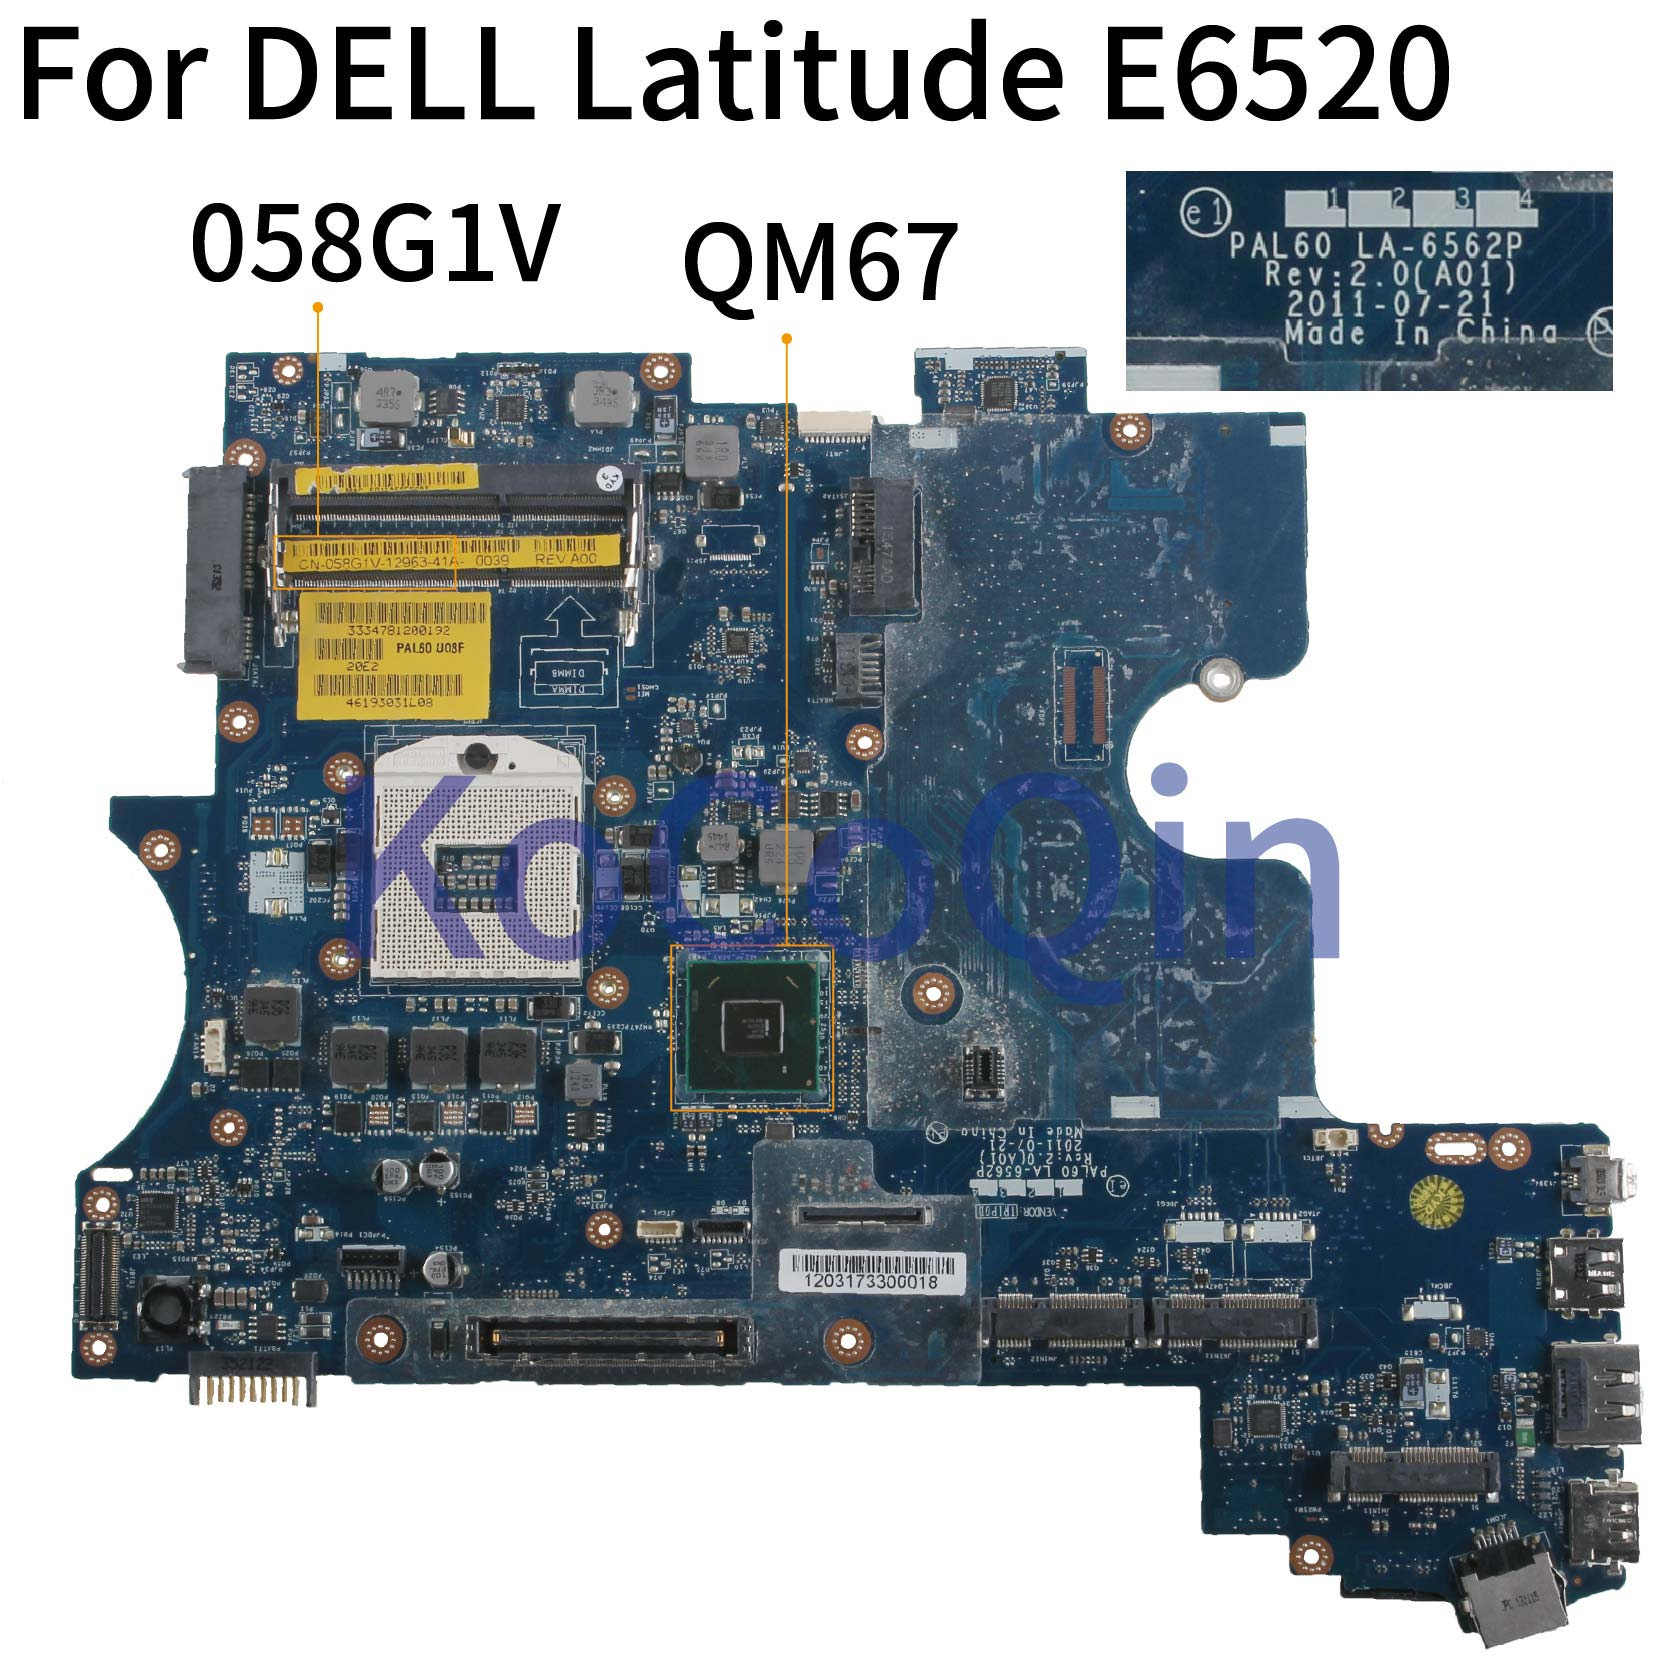 KoCoQin ноутбук материнская плата для Dell Latitude E6520 QM67 материнская плата CN-058G1V 058G1V PAL60 LA-6562P image